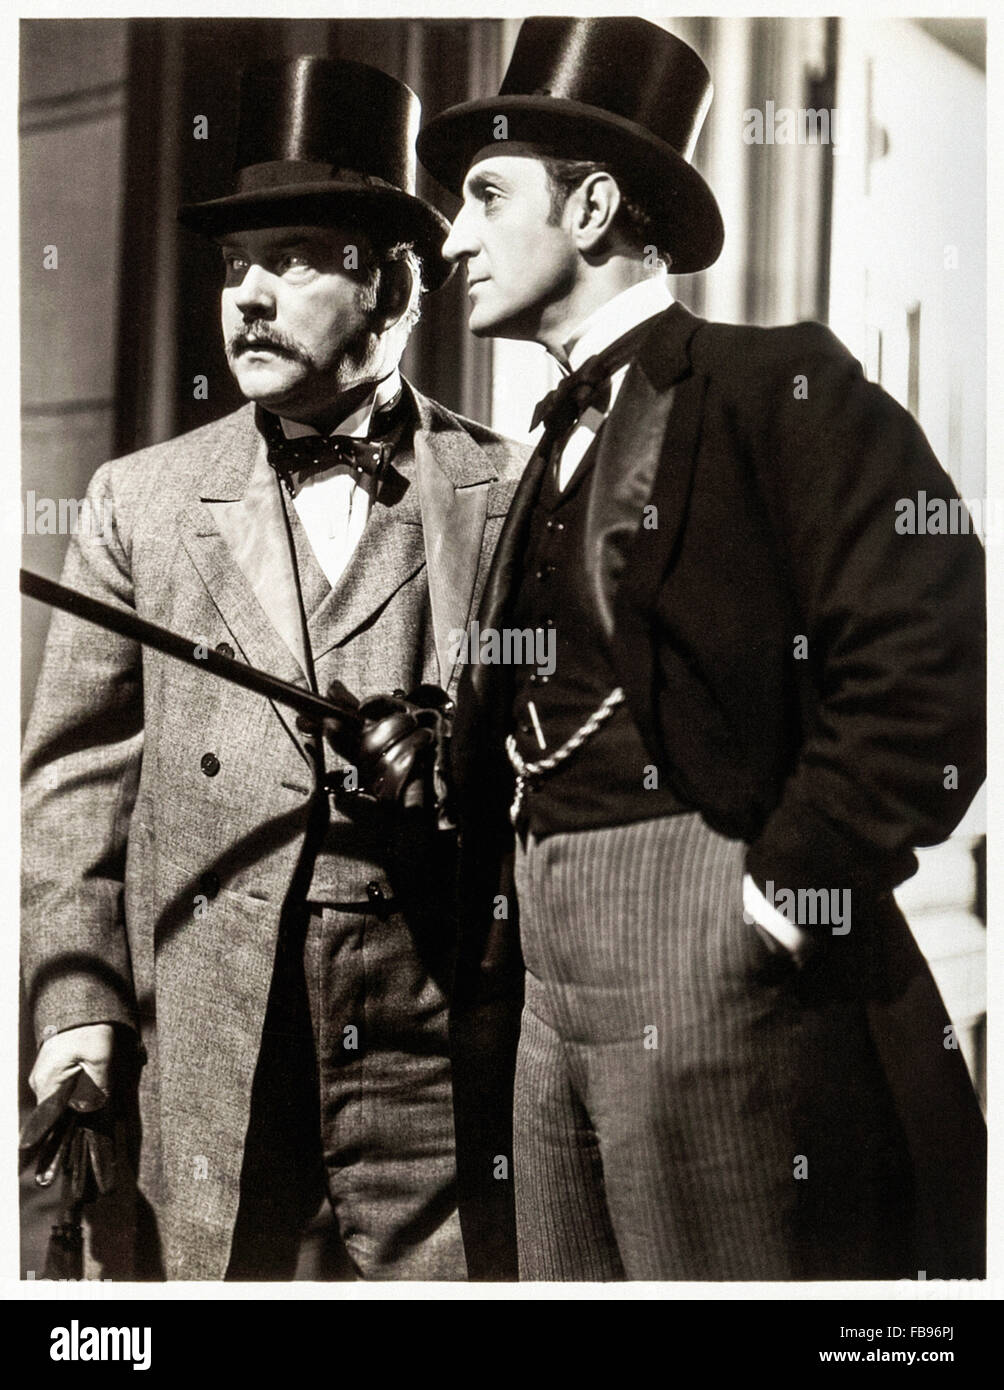 Publicity shot released to promote 'The Adventures of Sherlock Holmes' released in 1939' showing Basil - Stock Image